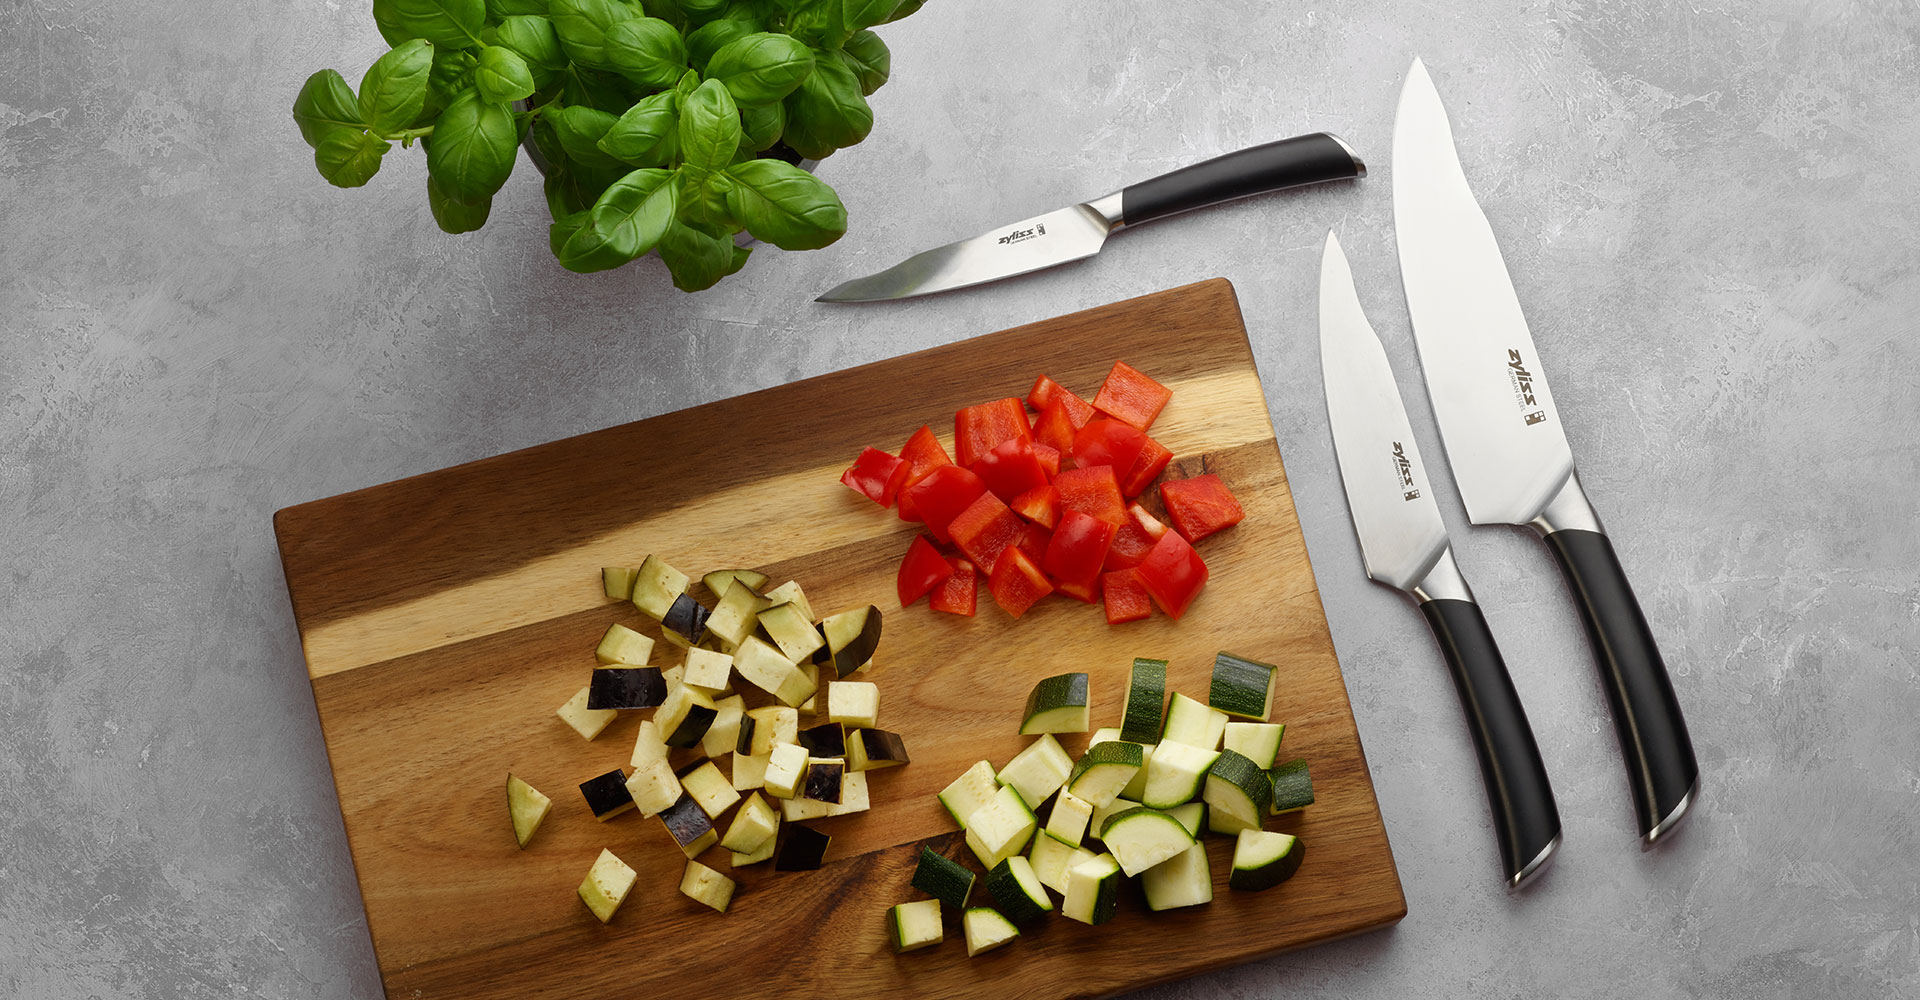 Zyliss home cooking knives and cookware